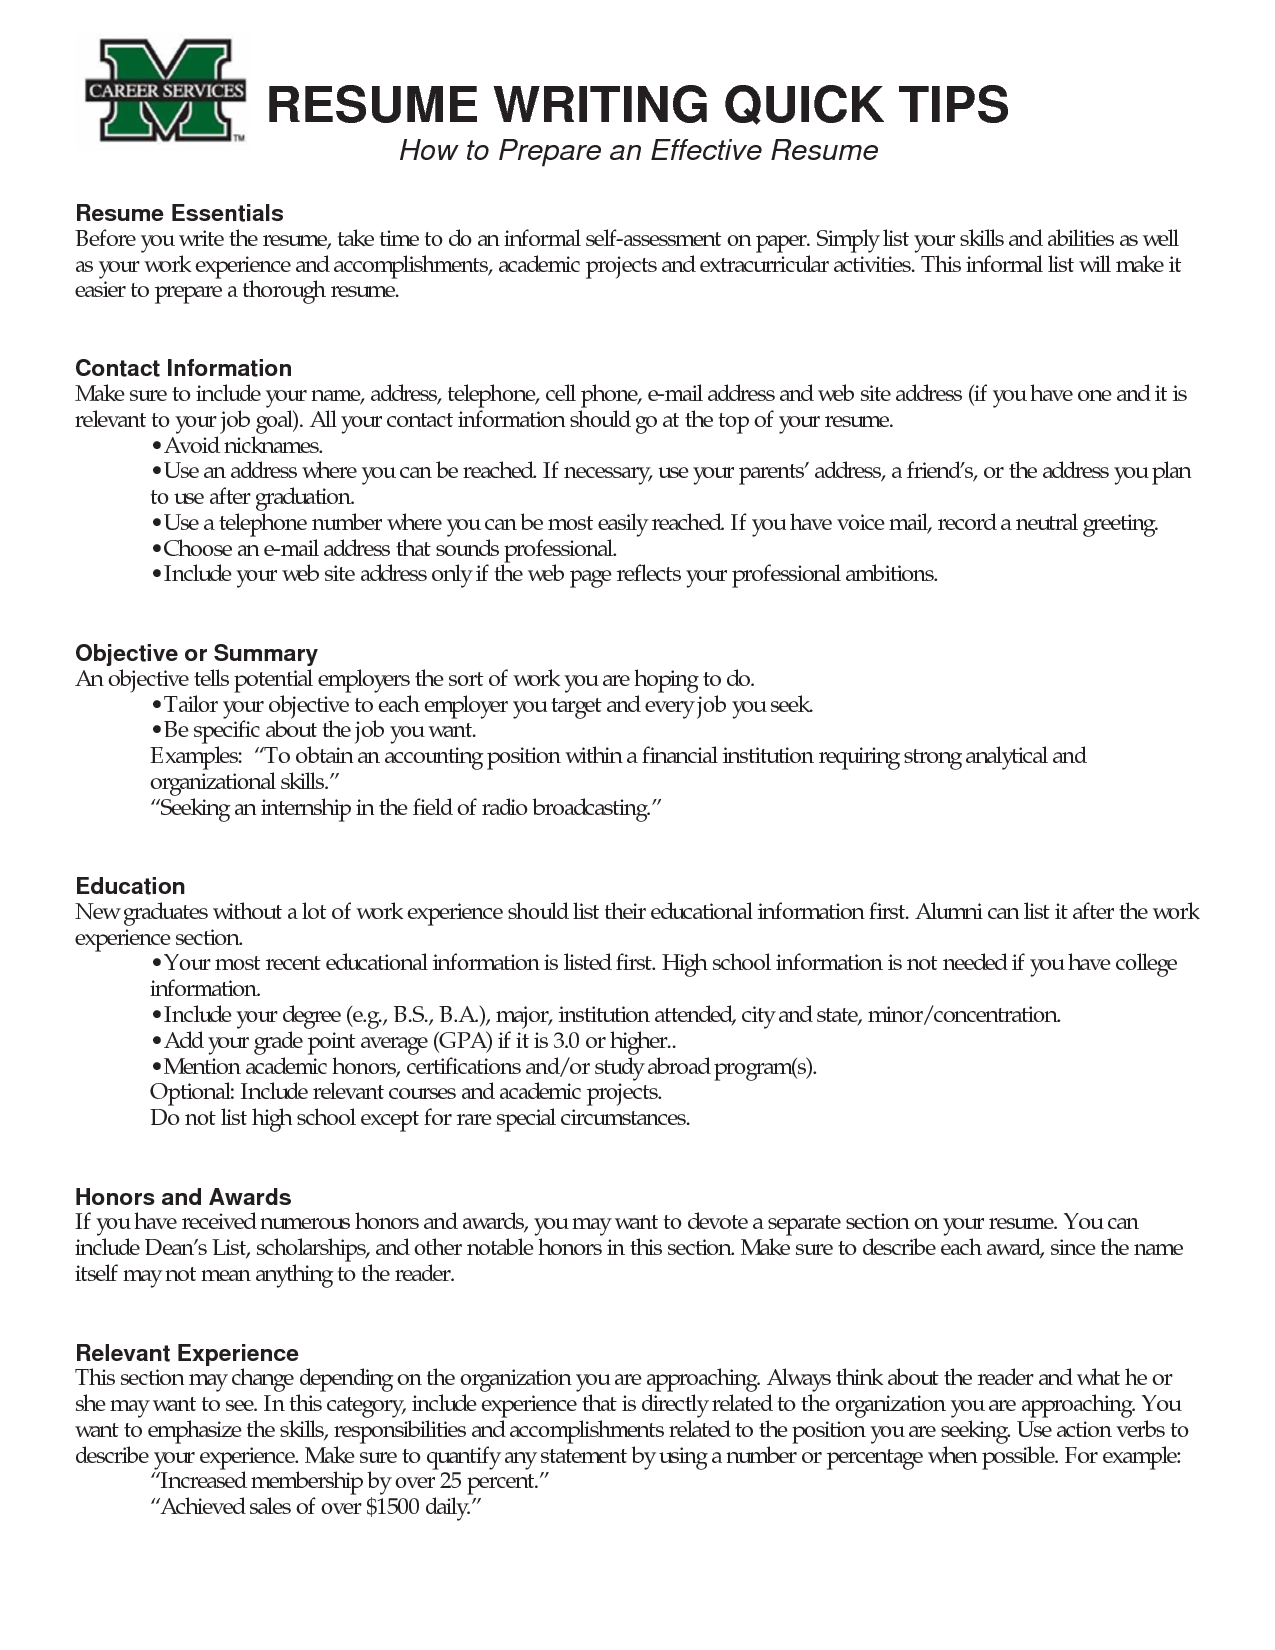 Should I Include A Cover Letter Tips Effective Resume Writing Loseyourlovewriting A Resume Cover